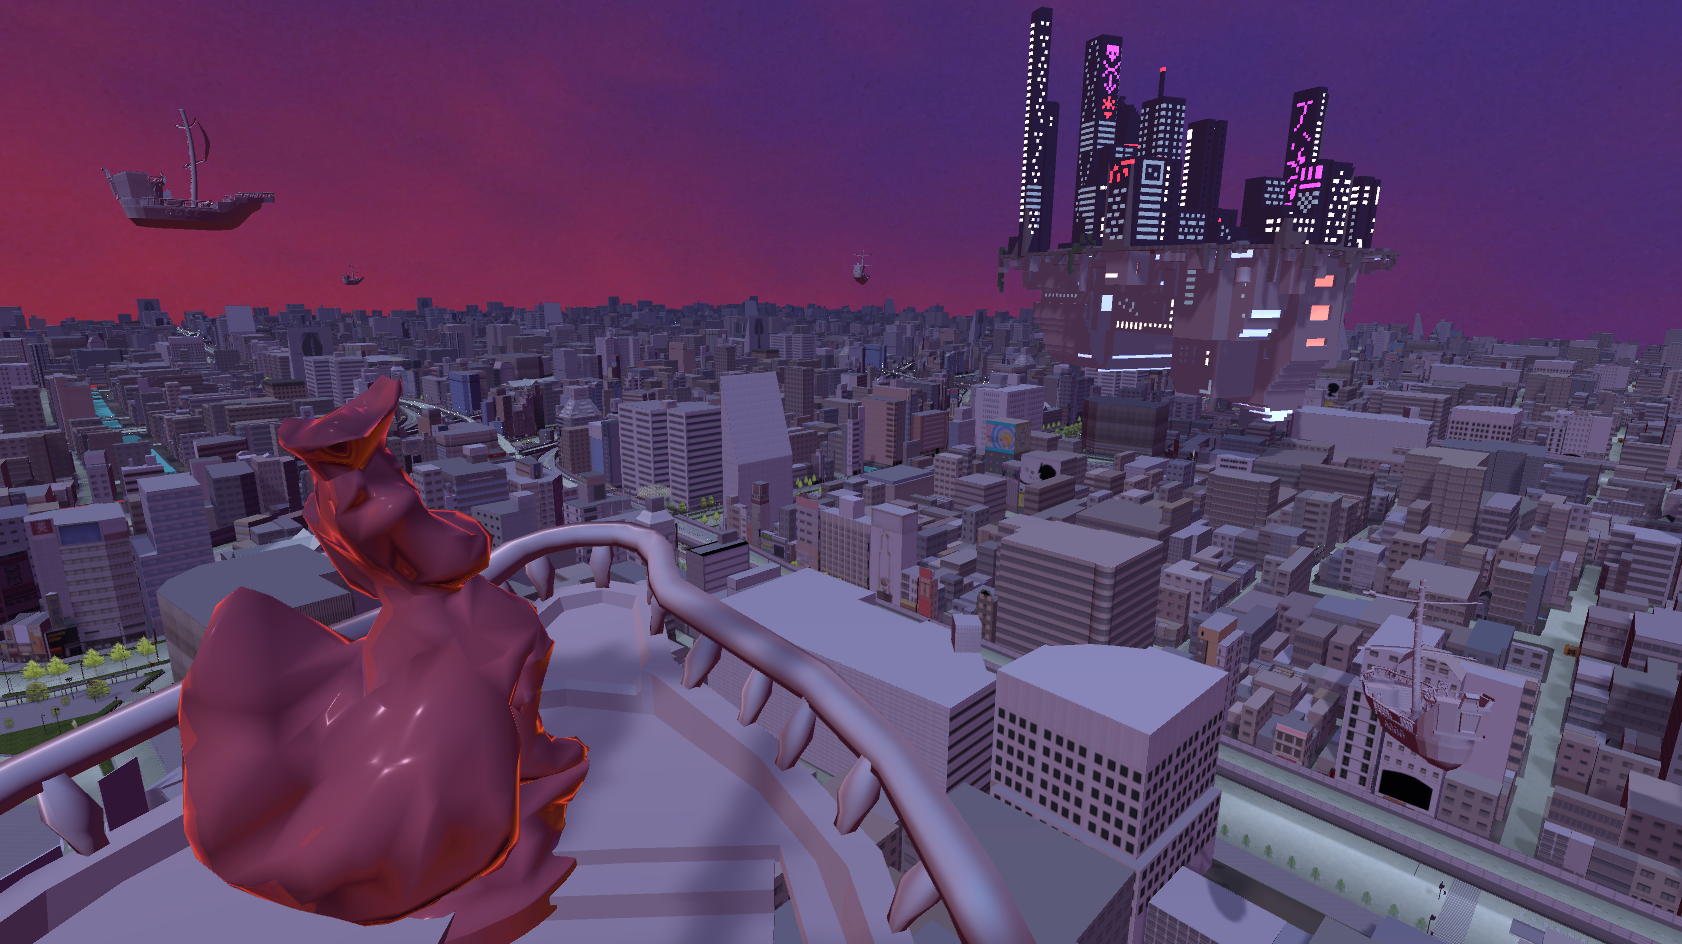 [W.I.P] Neon city is under attack ...